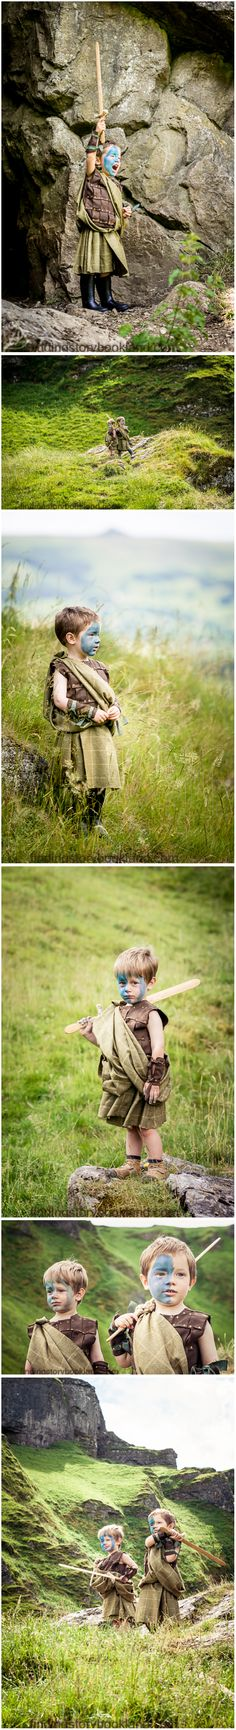 Braveheart: A simple DIY guide on how to do a Scottish-themed children's LARP or cosplay photo shoot with costume, prop and location ideas from findingstorybookland.com. Also perfect for Outlander!